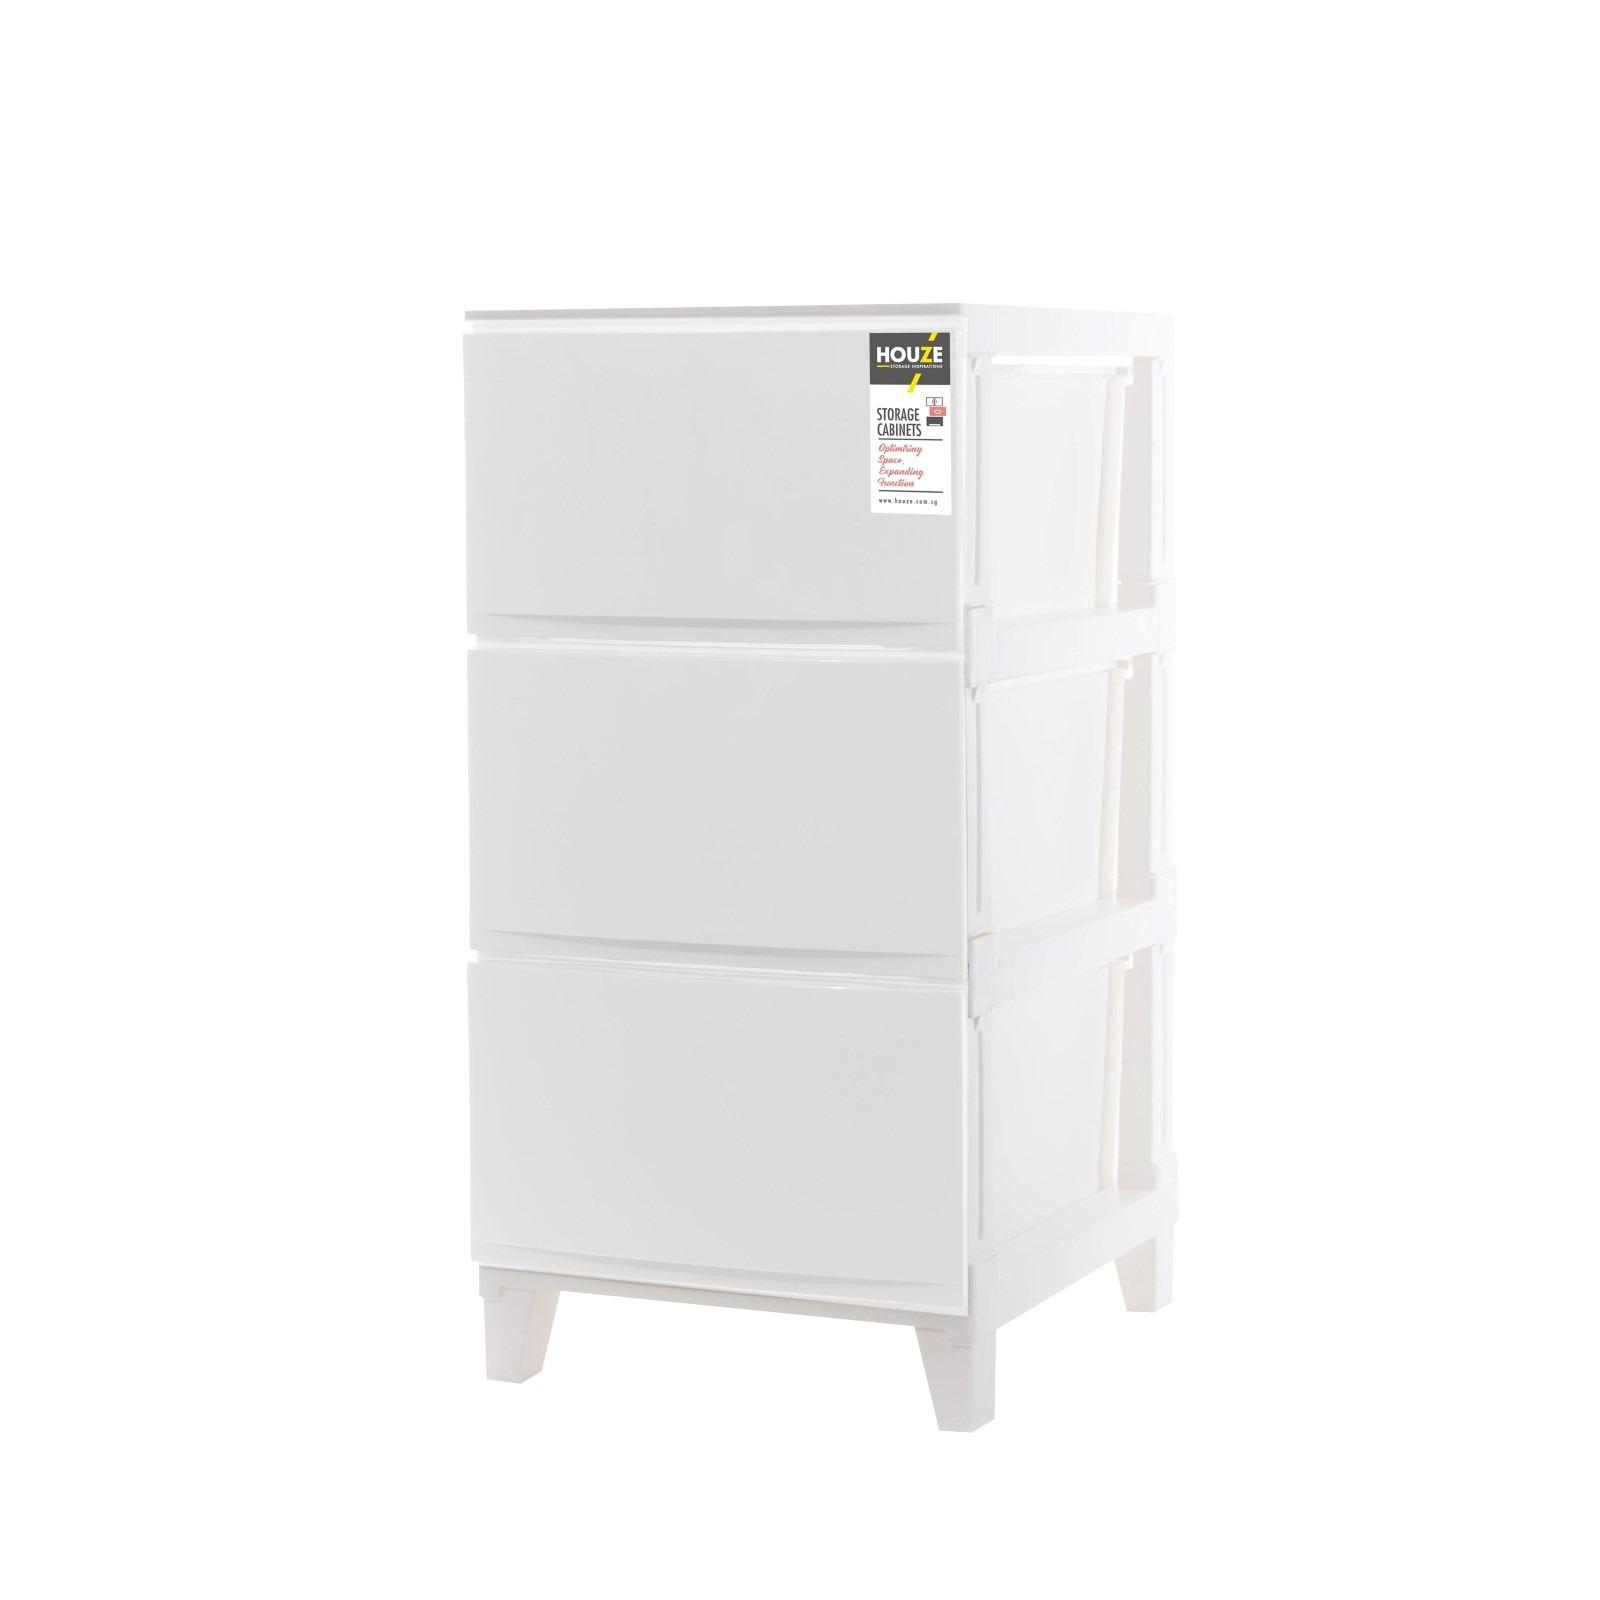 Sale Houze 3 Tier Knock Down Compact Cabinet On Singapore